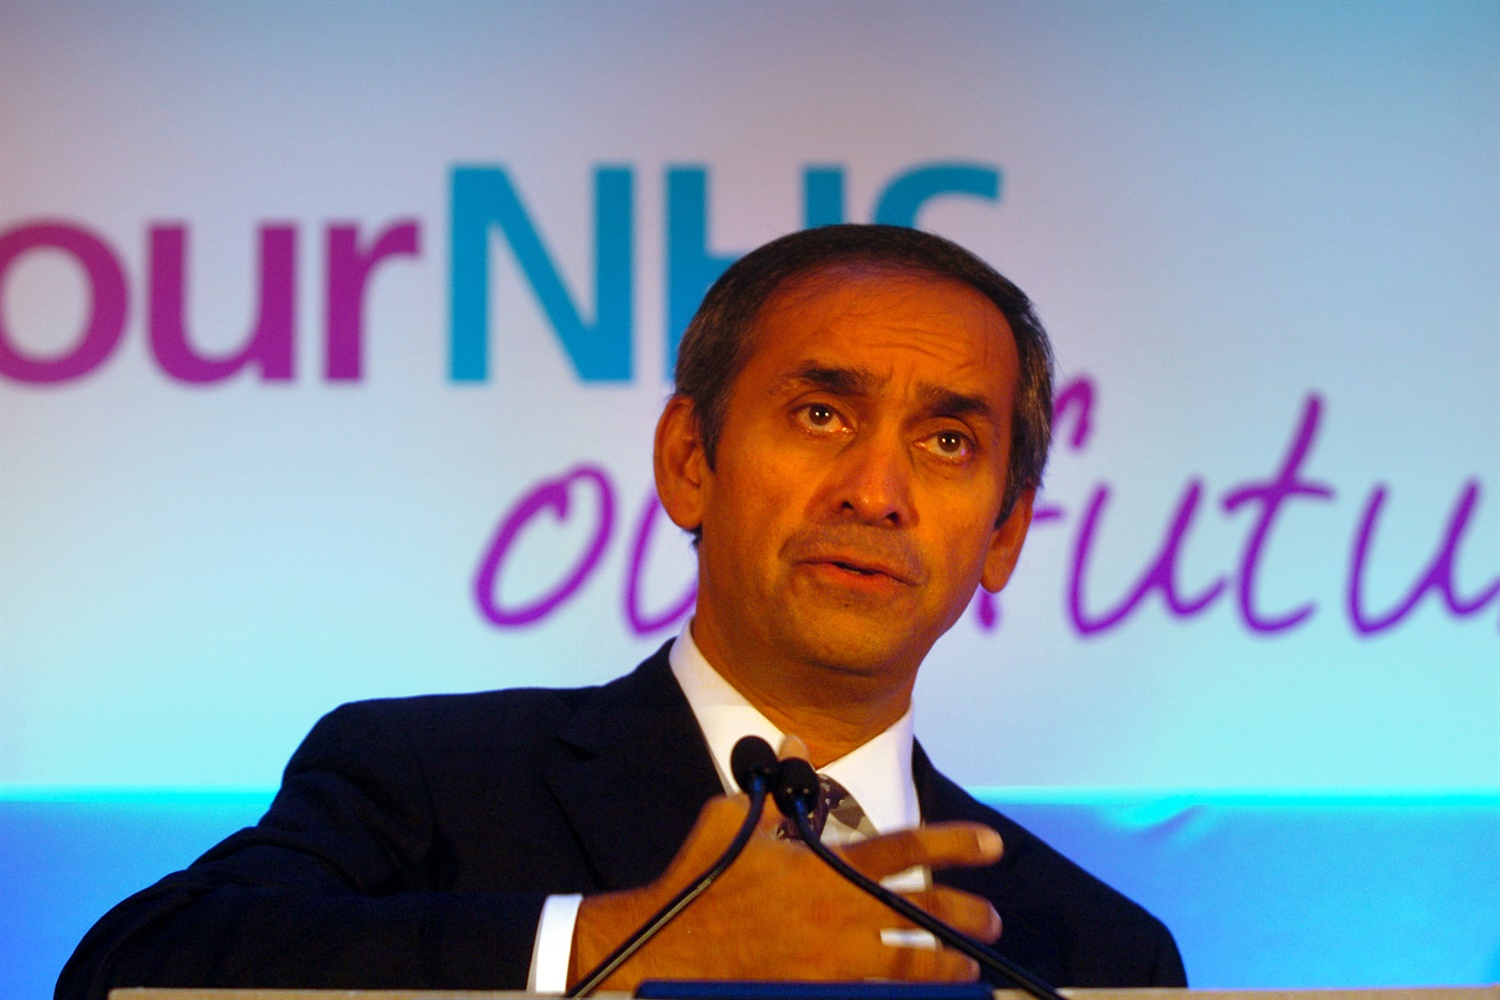 Lord Darzi Calls for 'full automation' Strategy for Repetitive Health and Care Tasks